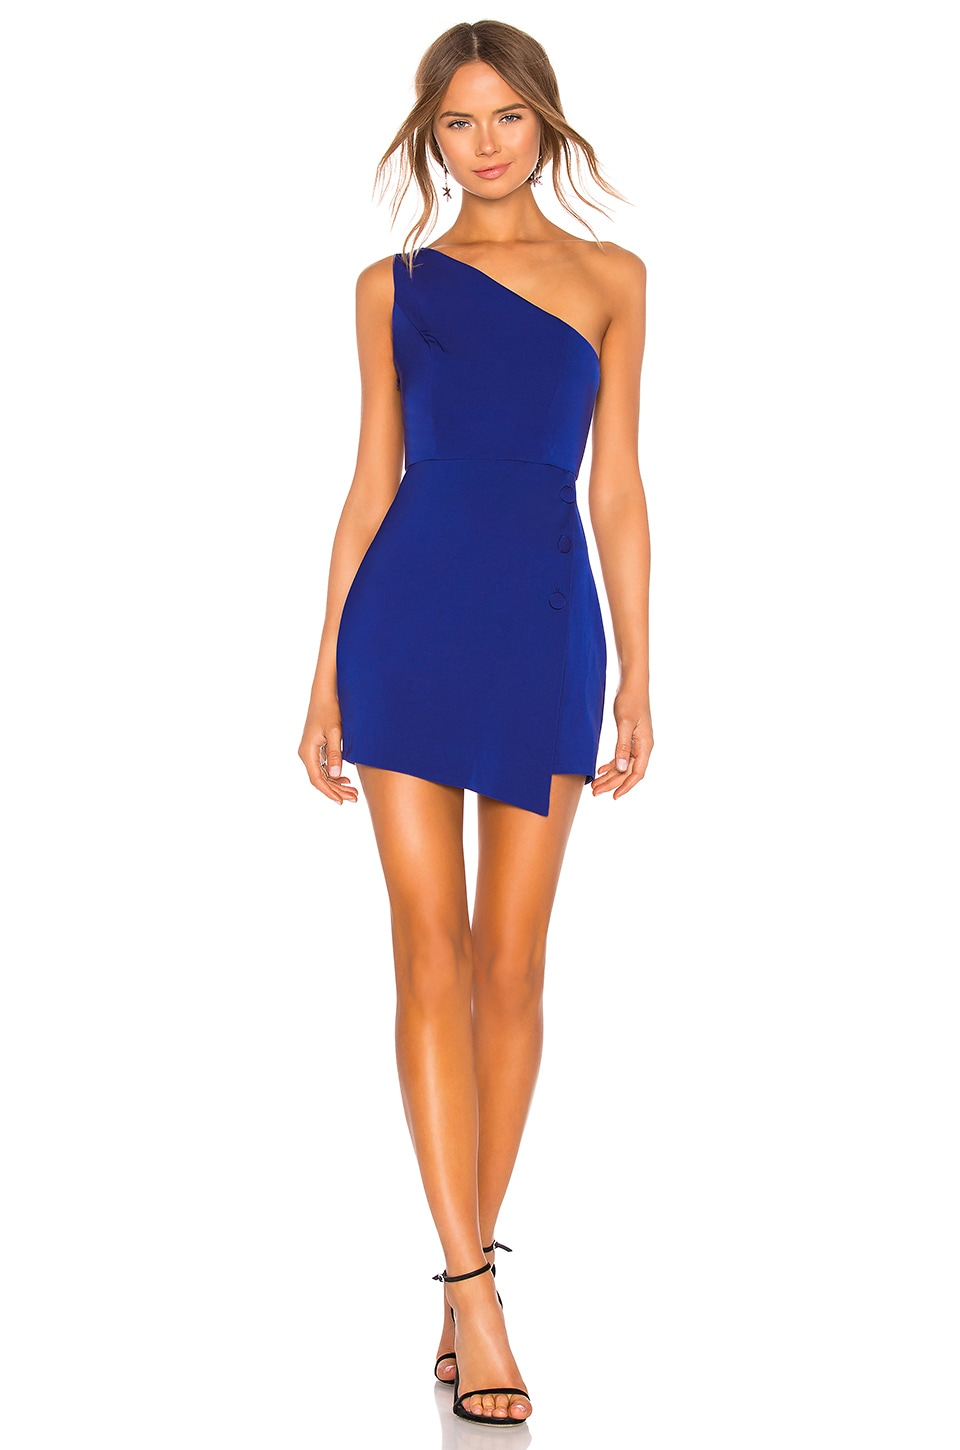 Tere Mini Dress             NBD                                                                                                       CA$ 210.43 7